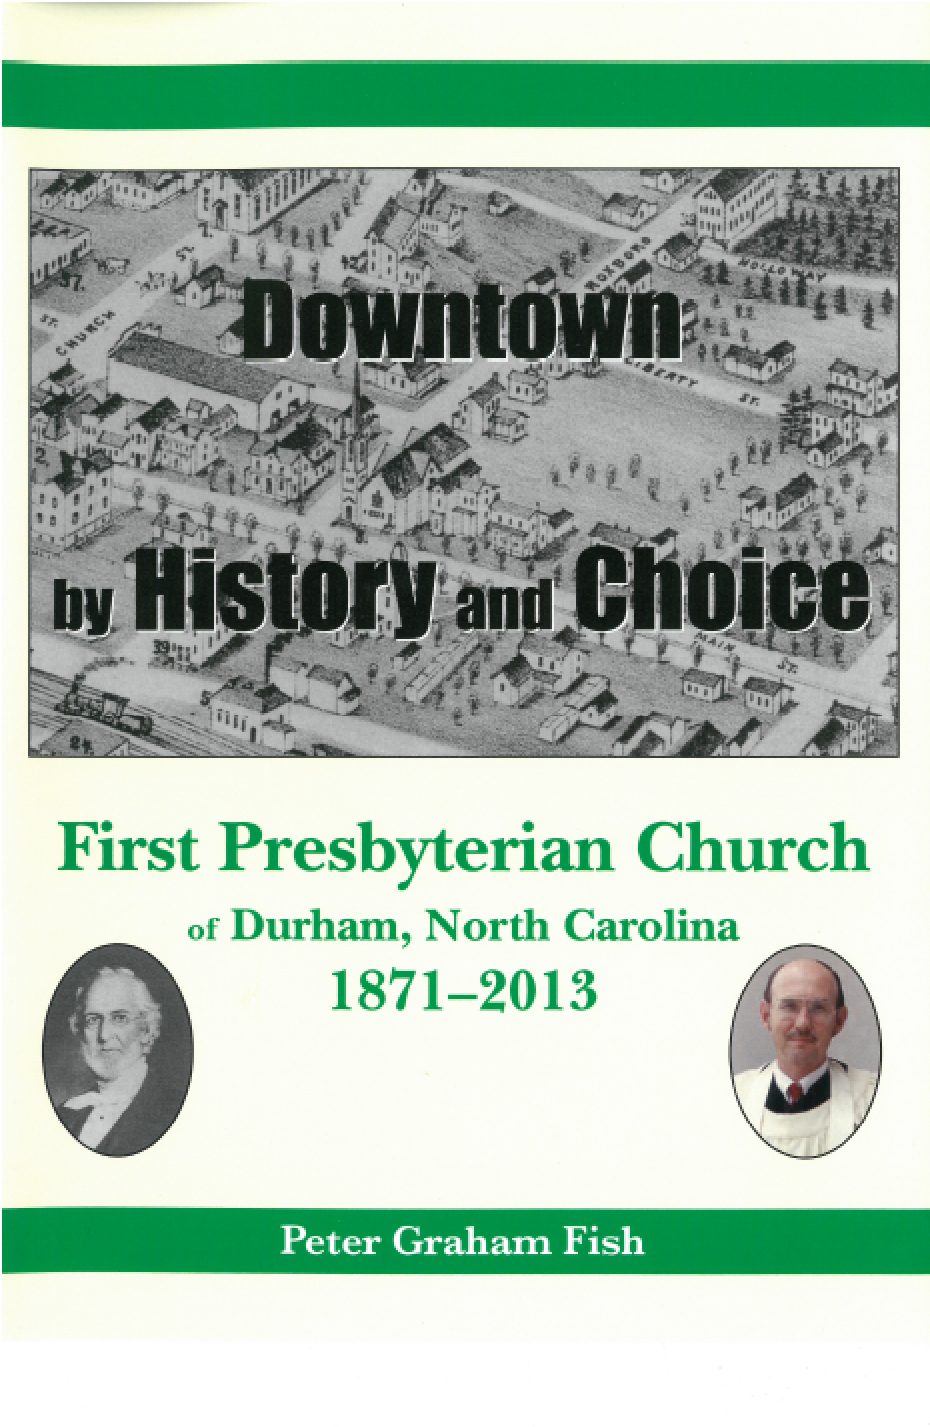 It's available!  New book on the history of FPC